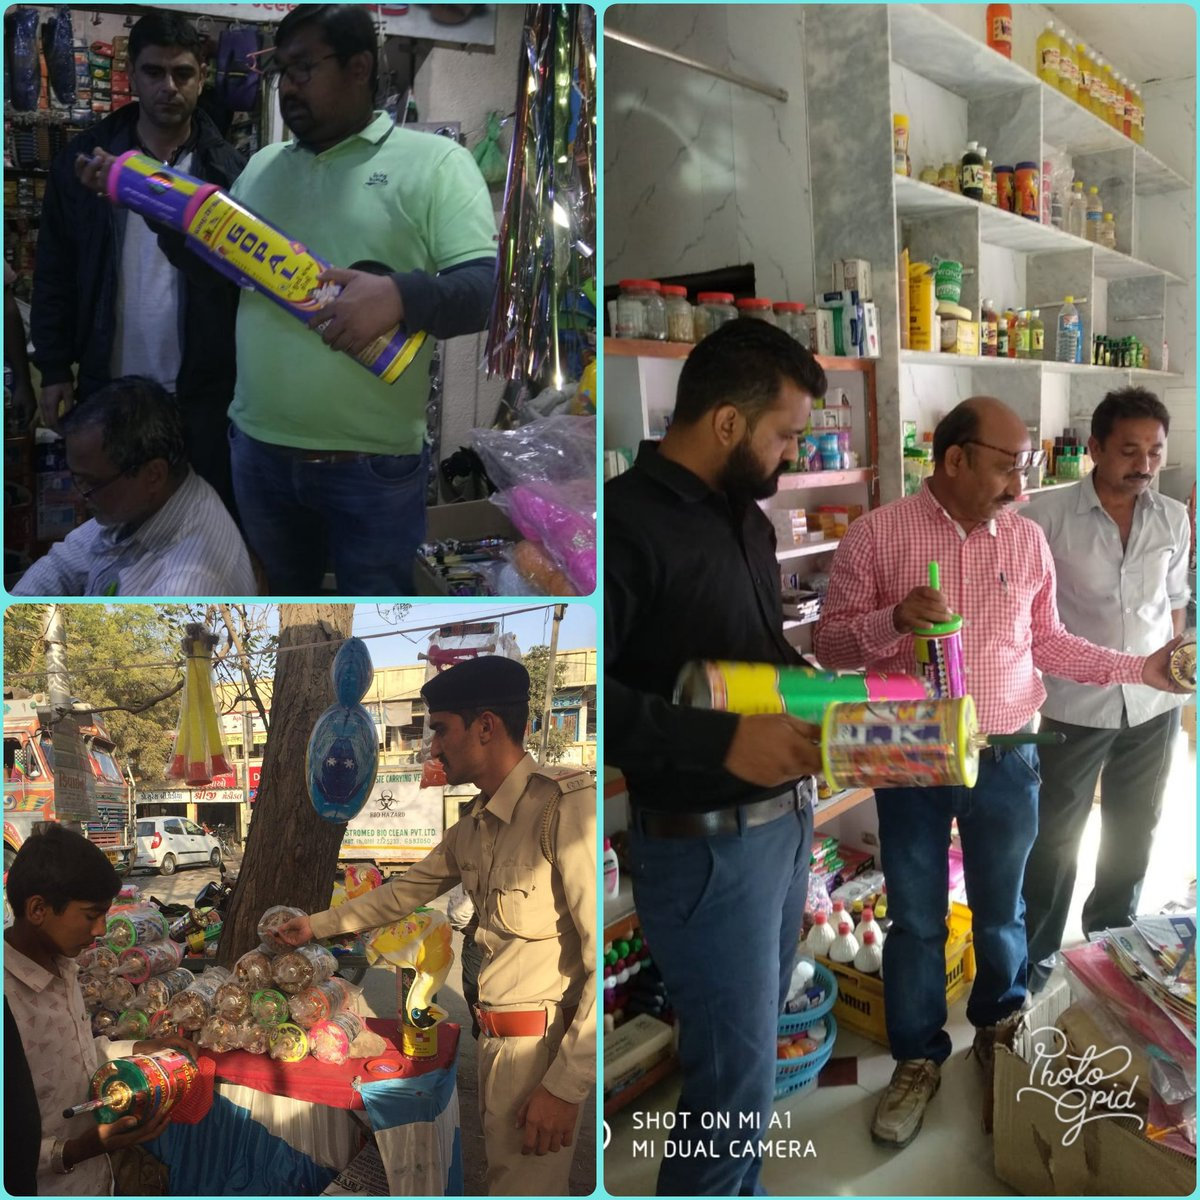 #OperationKaruna Joint ops. of teams of police and administration in #Padadhari and #Lodhika taluka to check the sell of Chinese Manjha. Special centre is operational for injured birds. Toll free #Karuna_Ambulance number-1962. @CollectorRjt  @CMOGuj  @RajkotDdo  @SP_RajkotRural